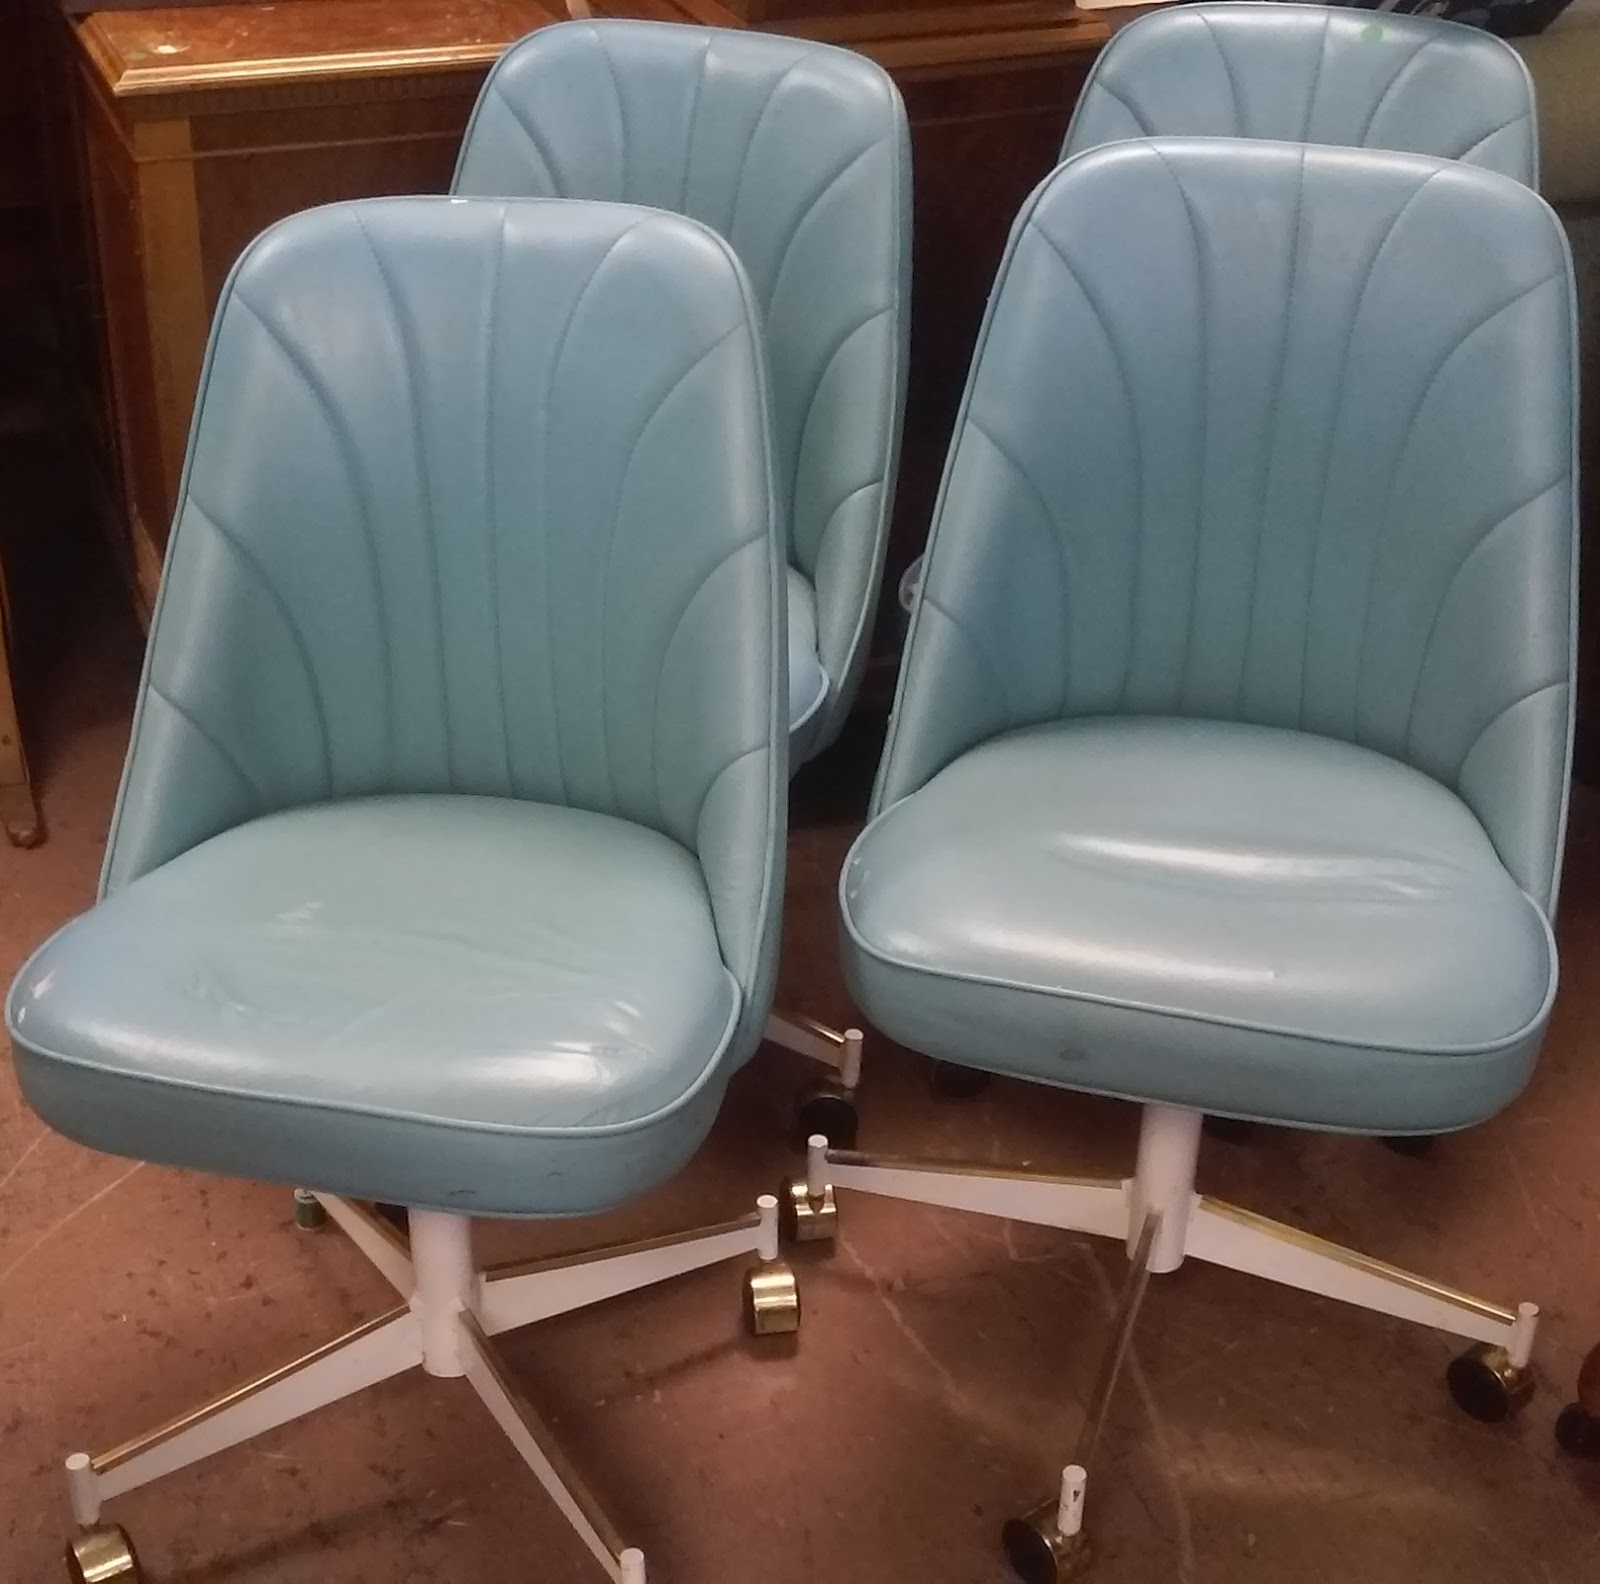 SOLD **REDUCED** Vintage Vinyl Chairs On Wheels   $30 / Set Of 4